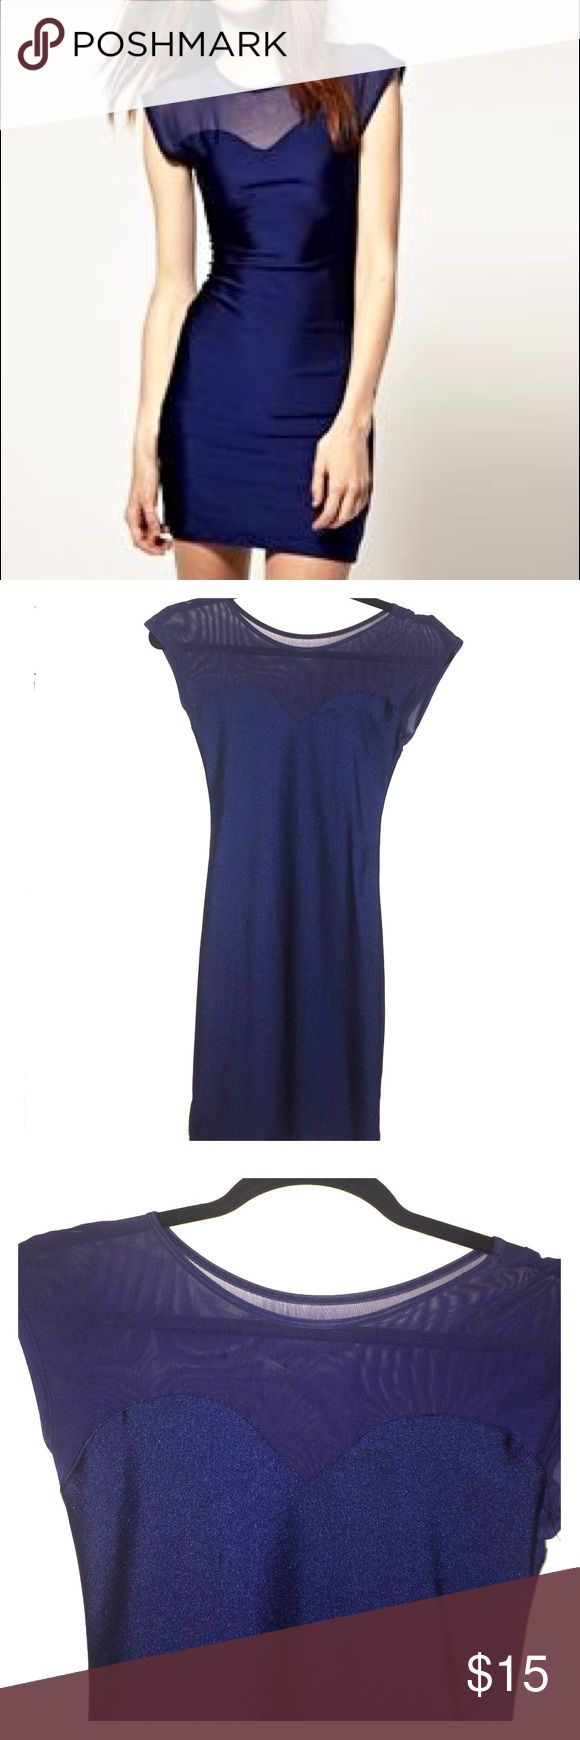 American Apparel navy mini dress Navy blue dress with mesh detail in front and back. Fits great! Worn once and excellent condition. Small tear in mesh which is hardly noticeable. Cut tag on inside so it wouldn't show when worn. American Apparel Dresses Mini